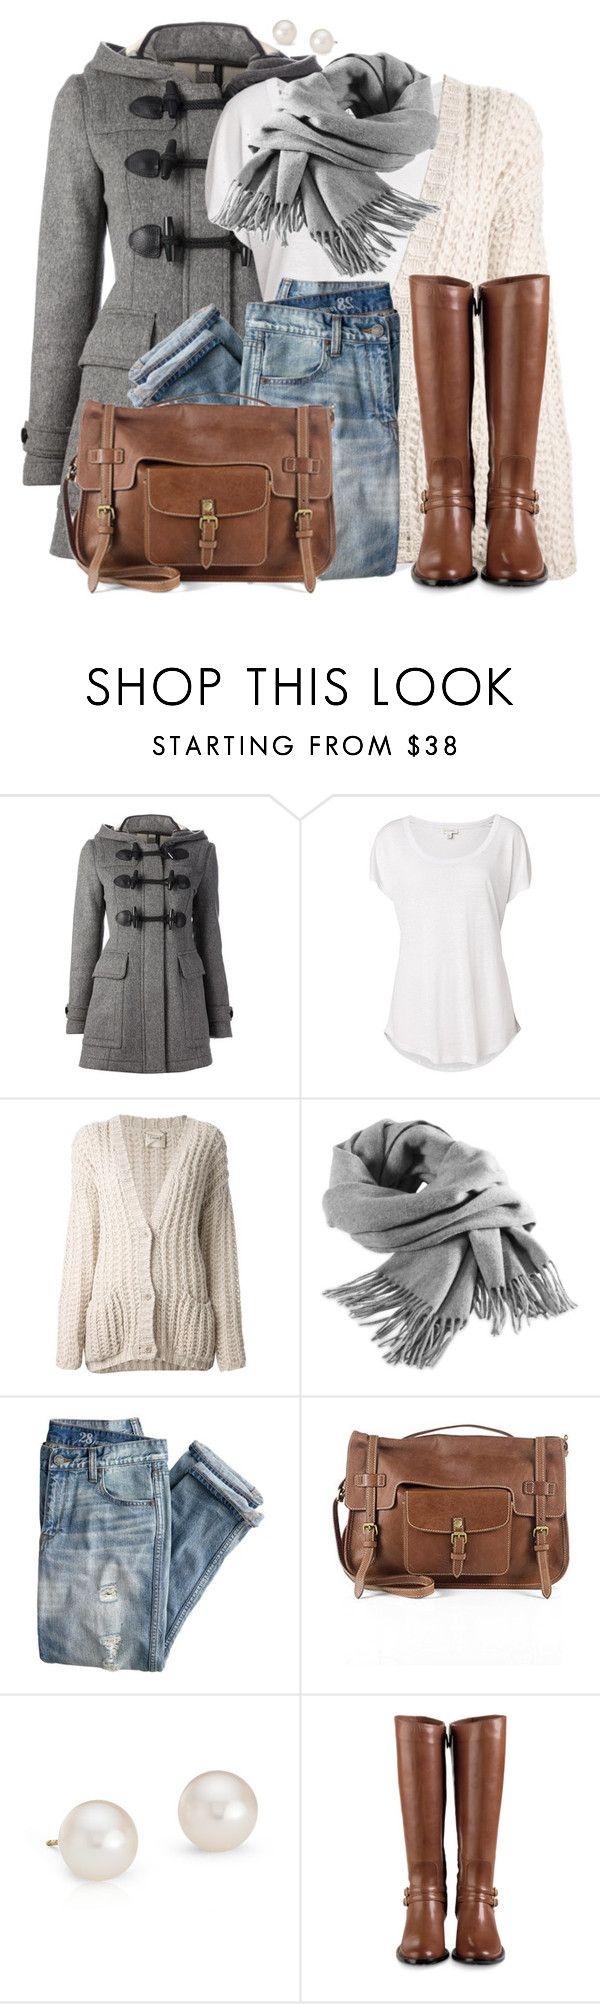 """""""Duffle Coat"""" by wishlist123 ❤ liked on Polyvore featuring Burberry, Witchery, Nude, Filippa K, J.Crew, Blue Nile, Cole Haan and dufflecoat"""